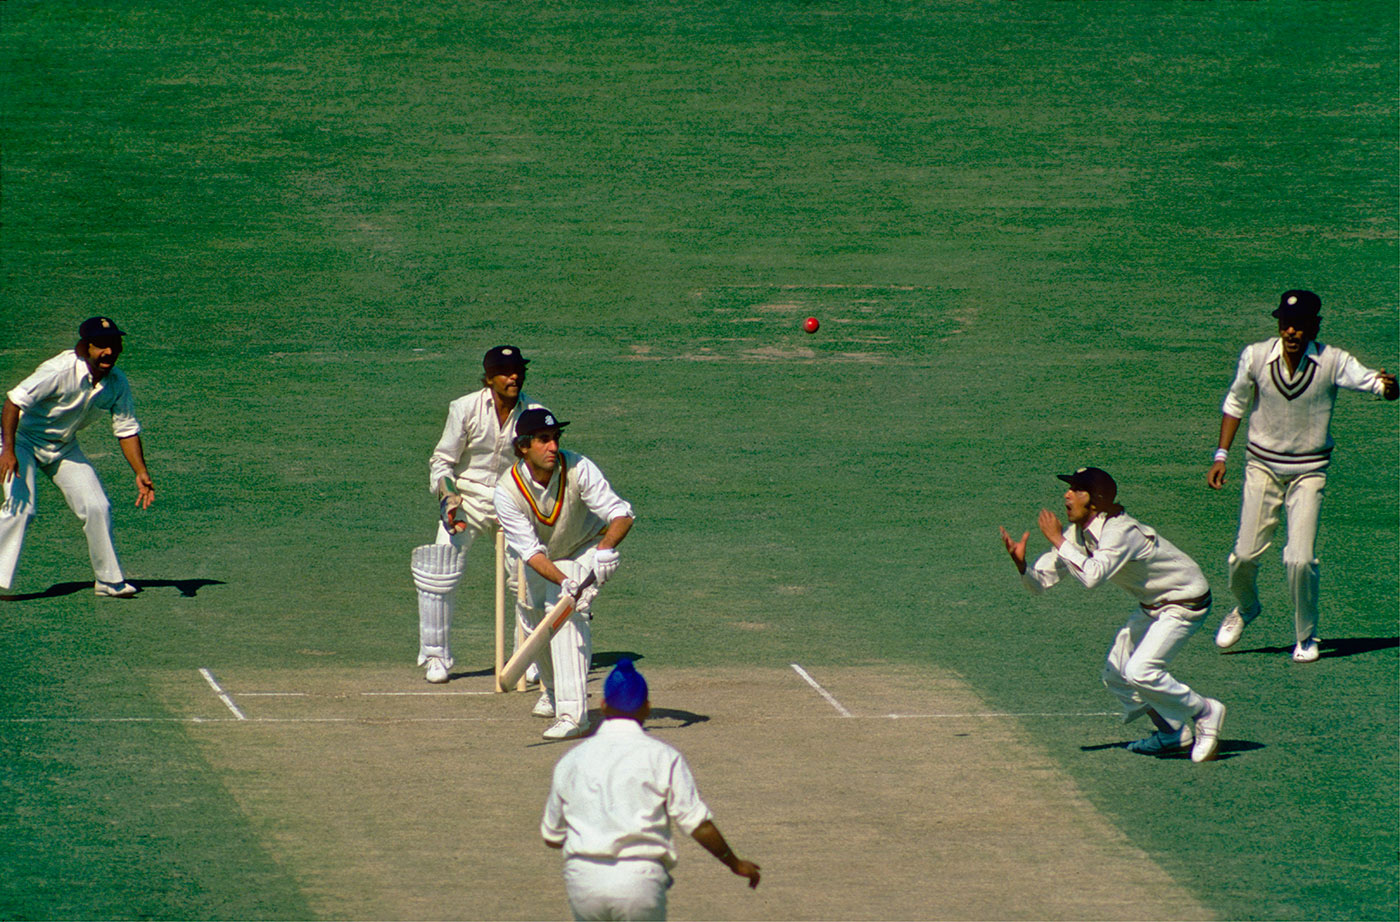 Eknath Solkar takes a yawn-inducingly easy one off Mike Brearley in the 1977 Calcutta Test